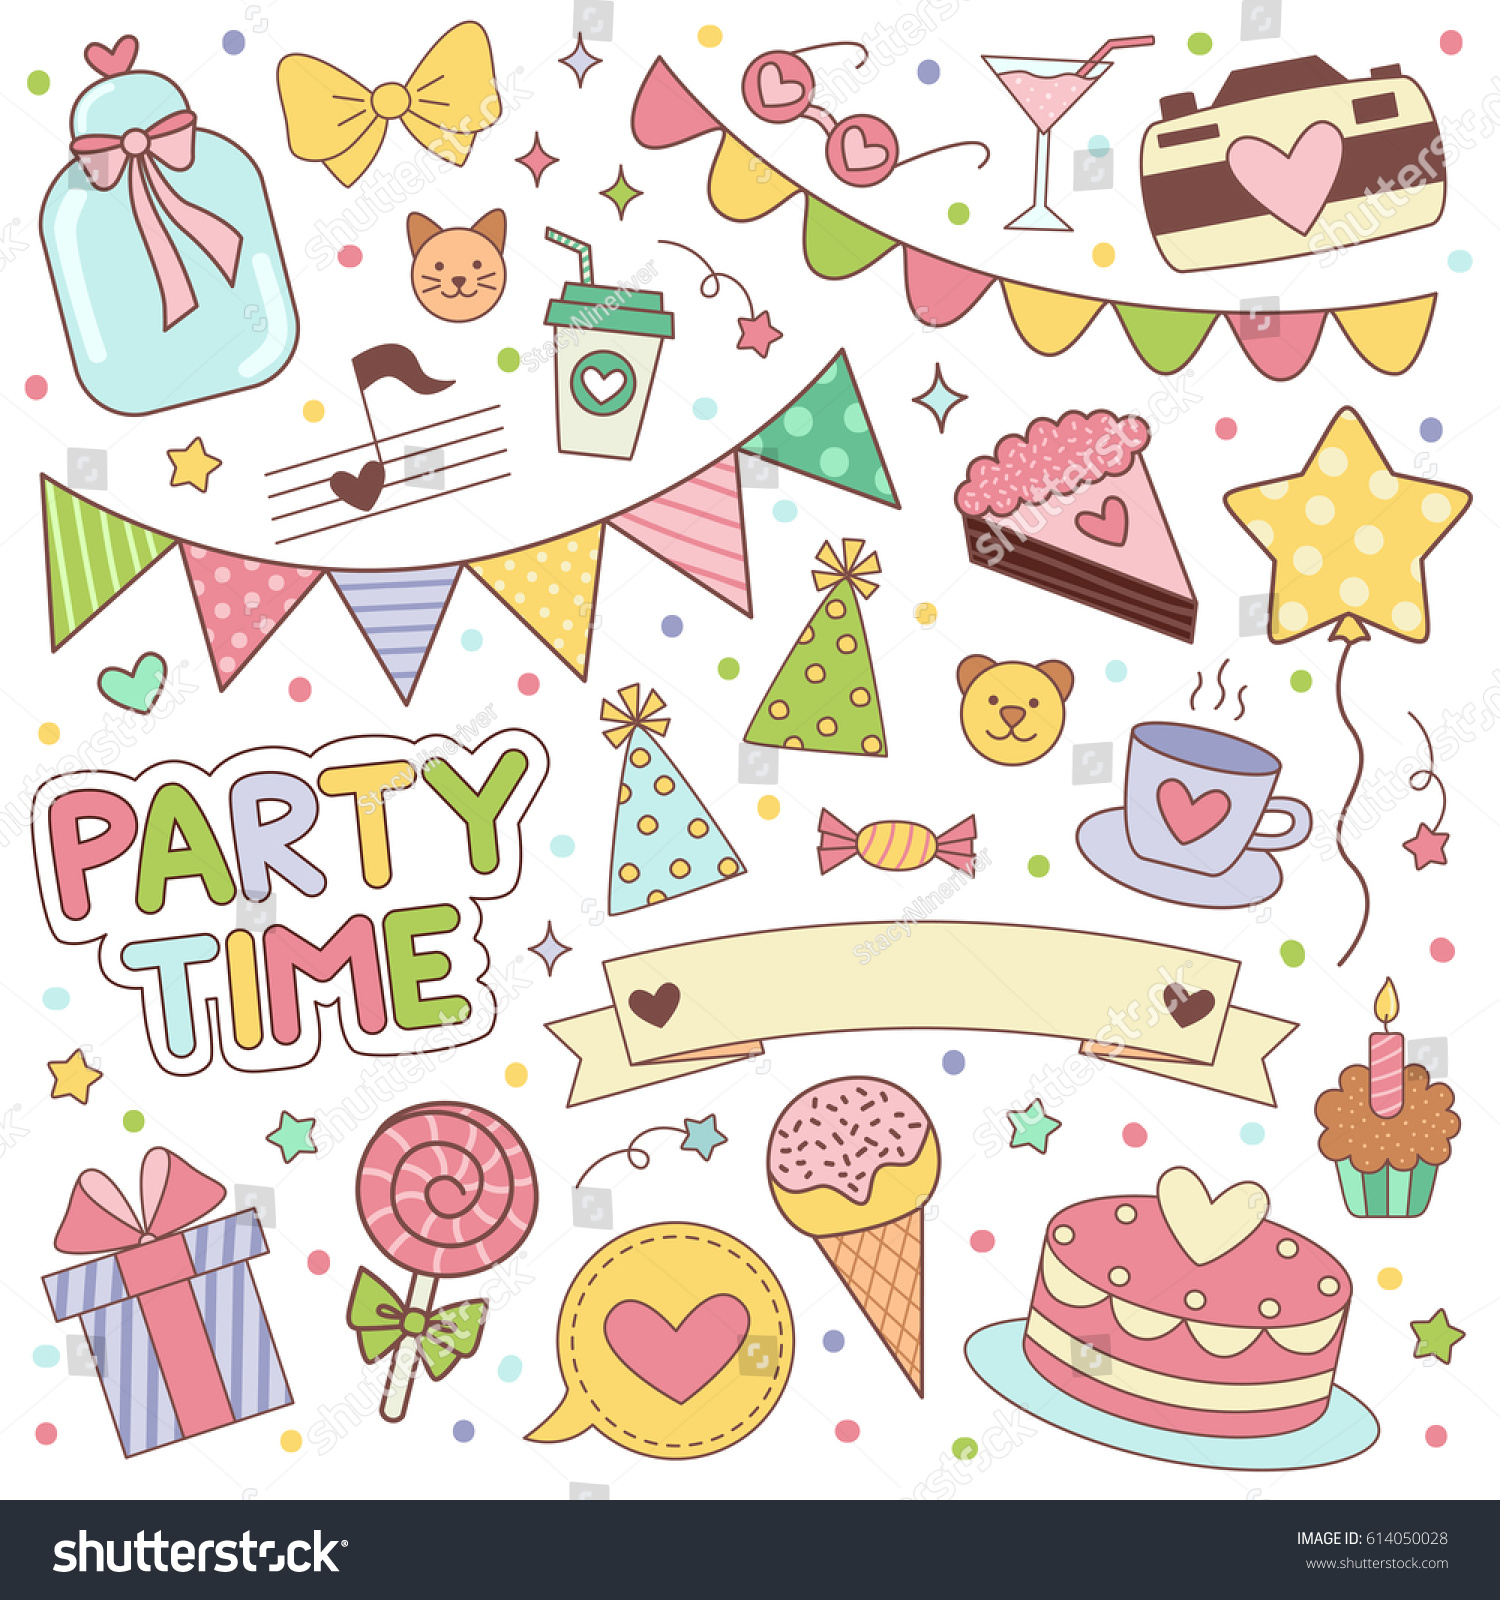 birthday stickers ; stock-vector-happy-birthday-stickers-set-vector-illustrartion-for-scrapbooking-and-decoration-planning-diary-614050028